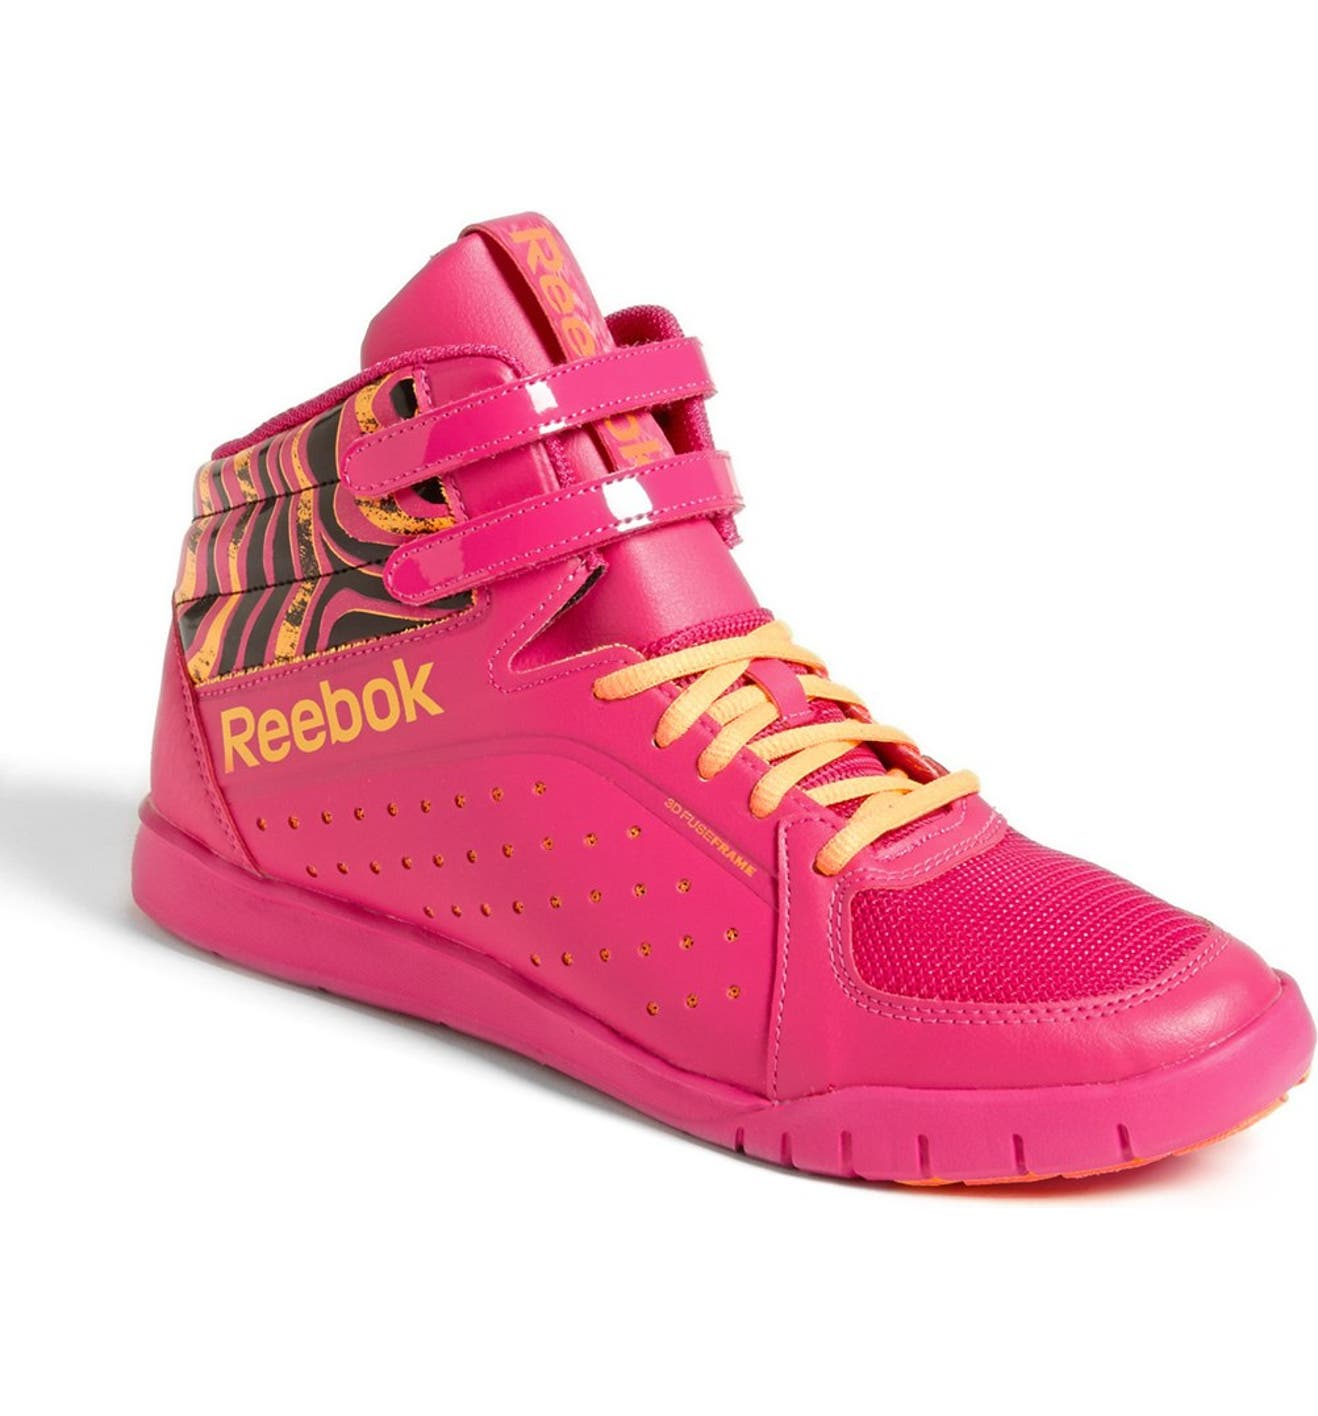 f71ee5275e54bb Reebok  Dance Urlead Mid 2.0  Training Shoe